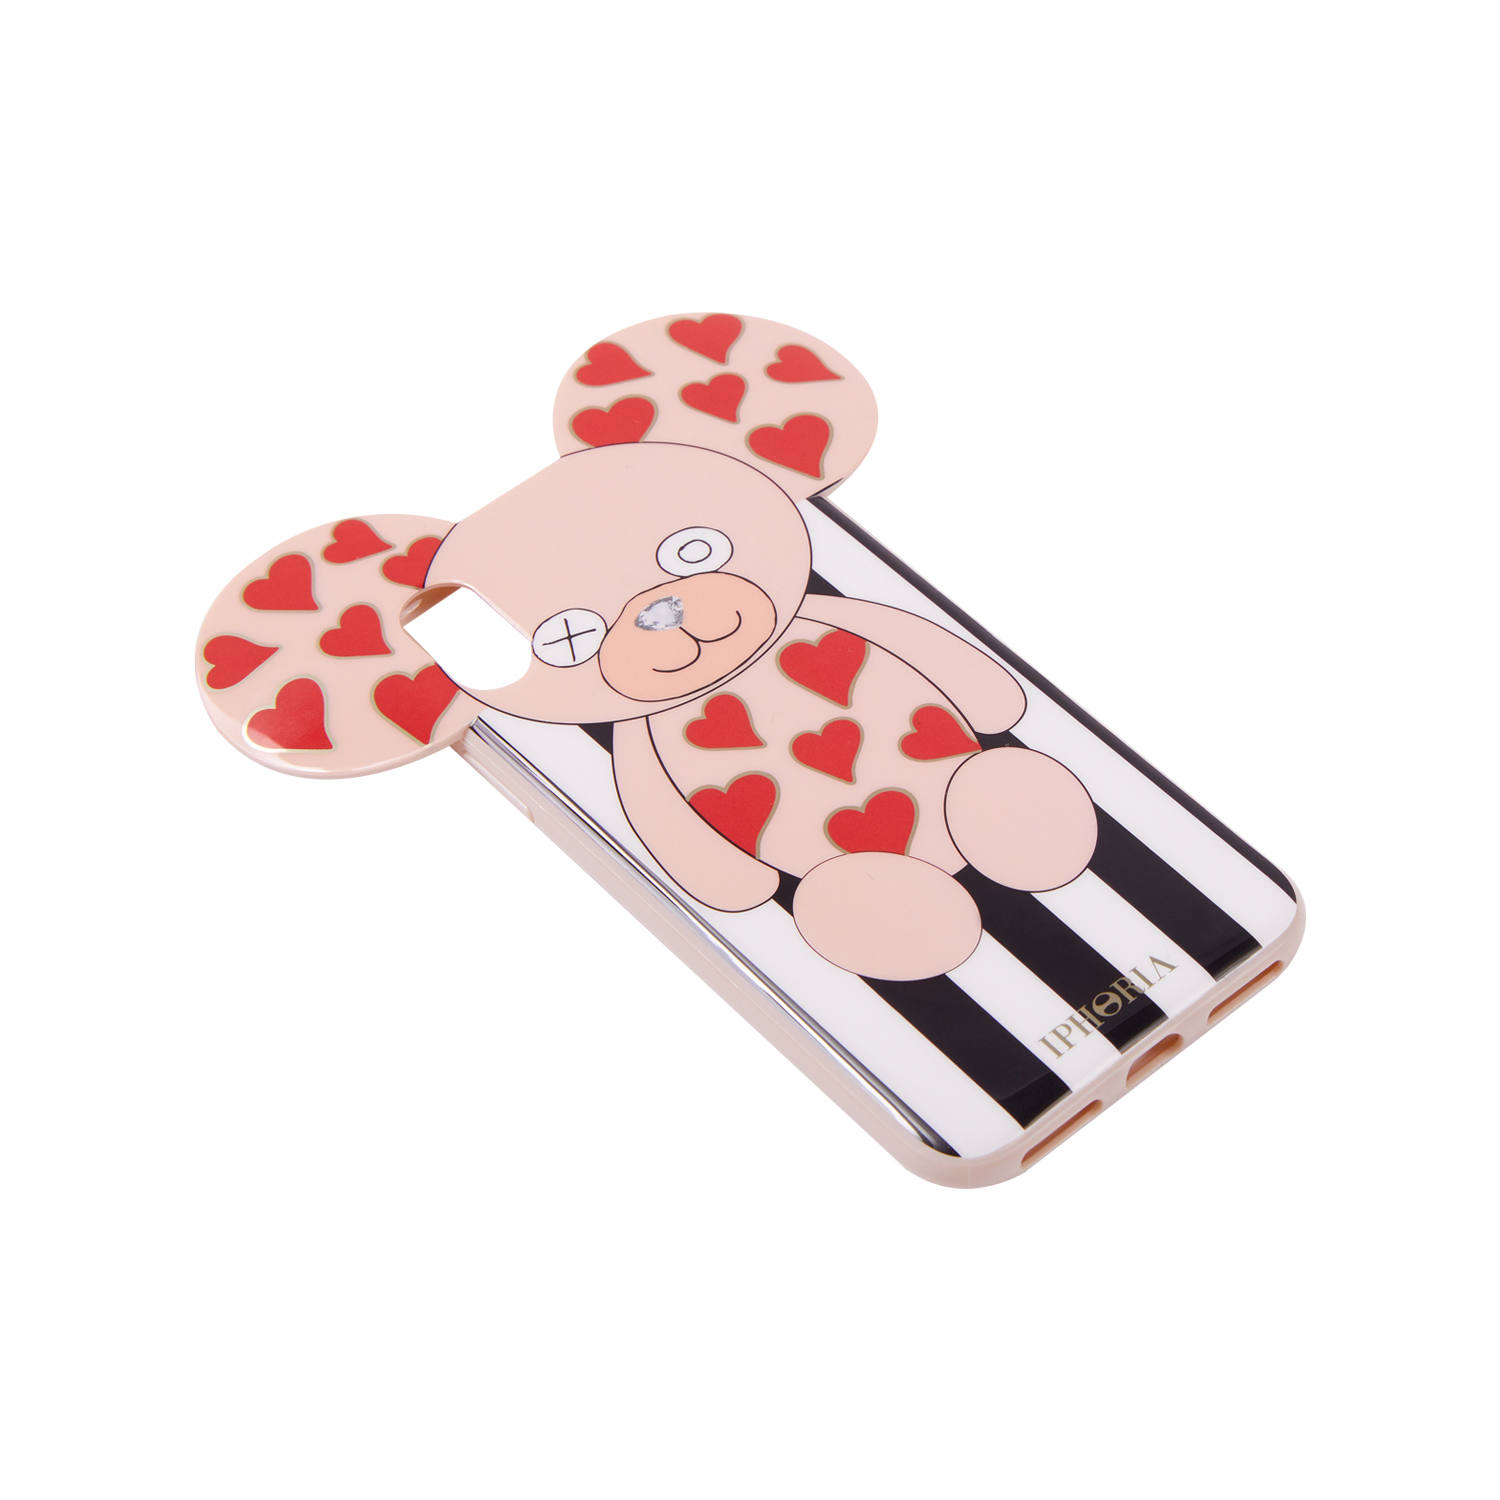 Case for Apple iPhone X/XS - Teddy with Hearts Stripes Black and White